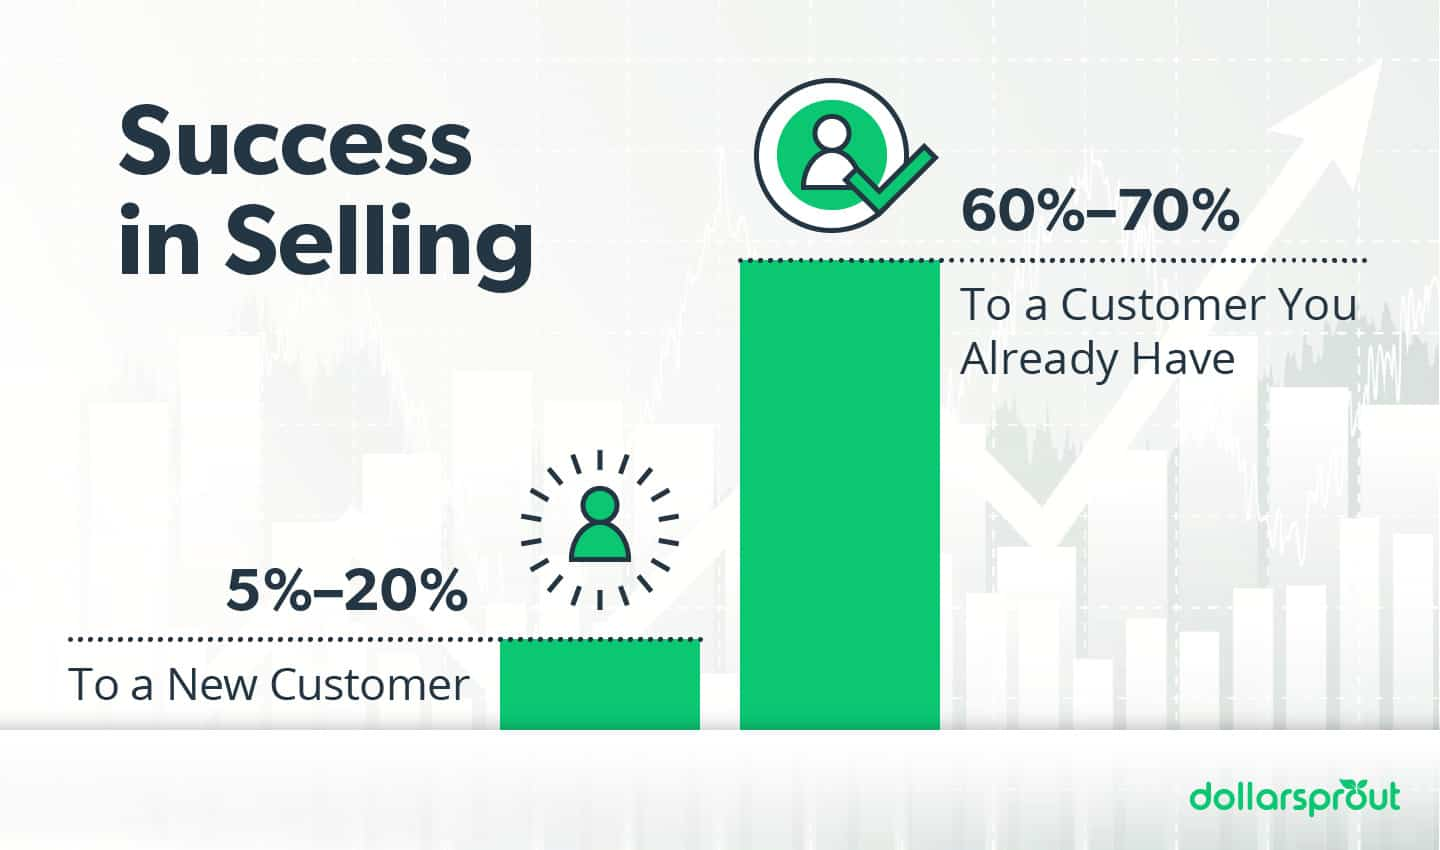 It's easier to sell to current customers than new ones